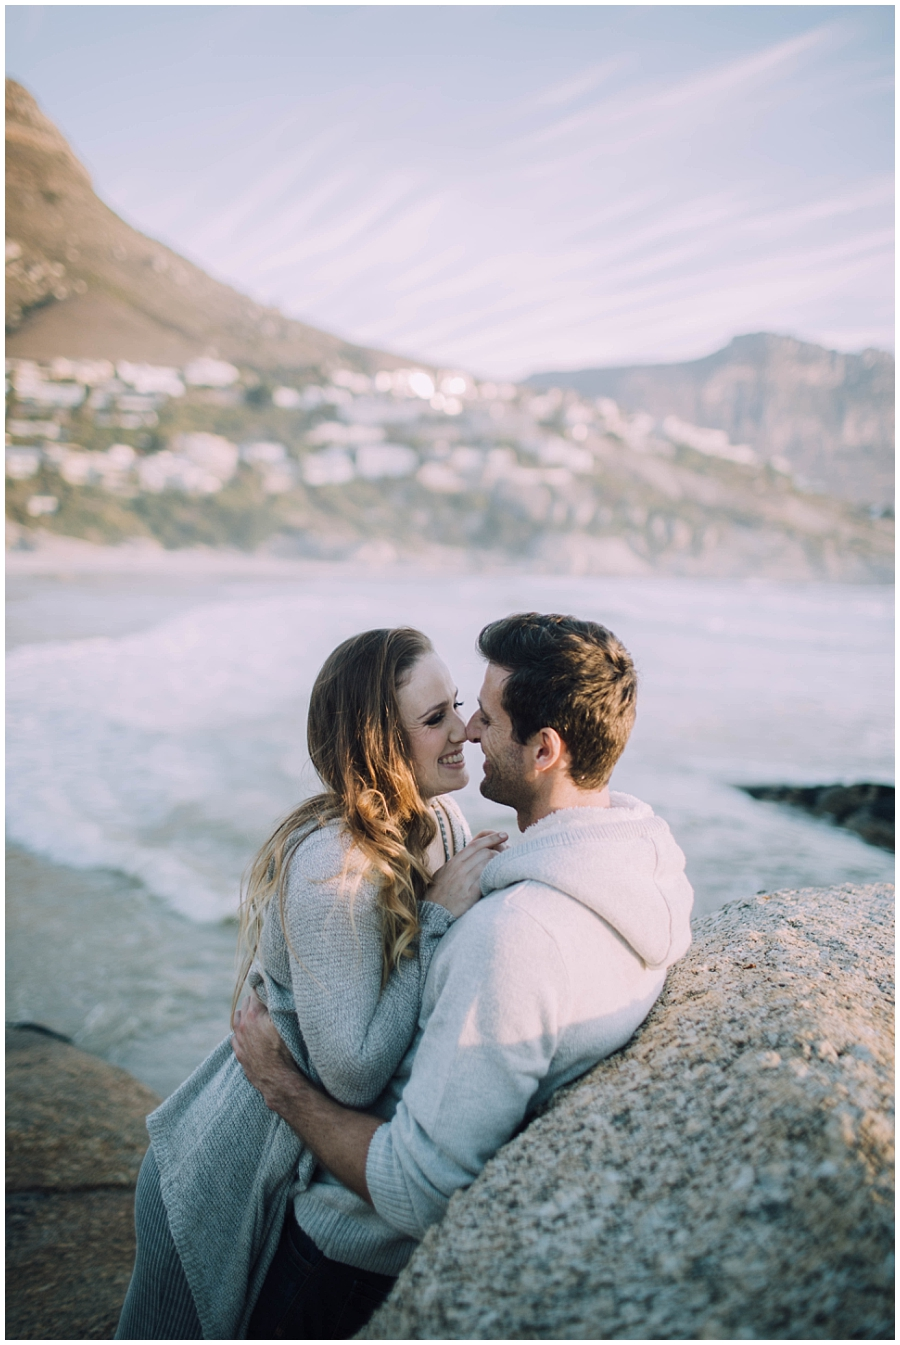 Ronel Kruger Cape Town Wedding and Lifestyle Photographer_8097.jpg